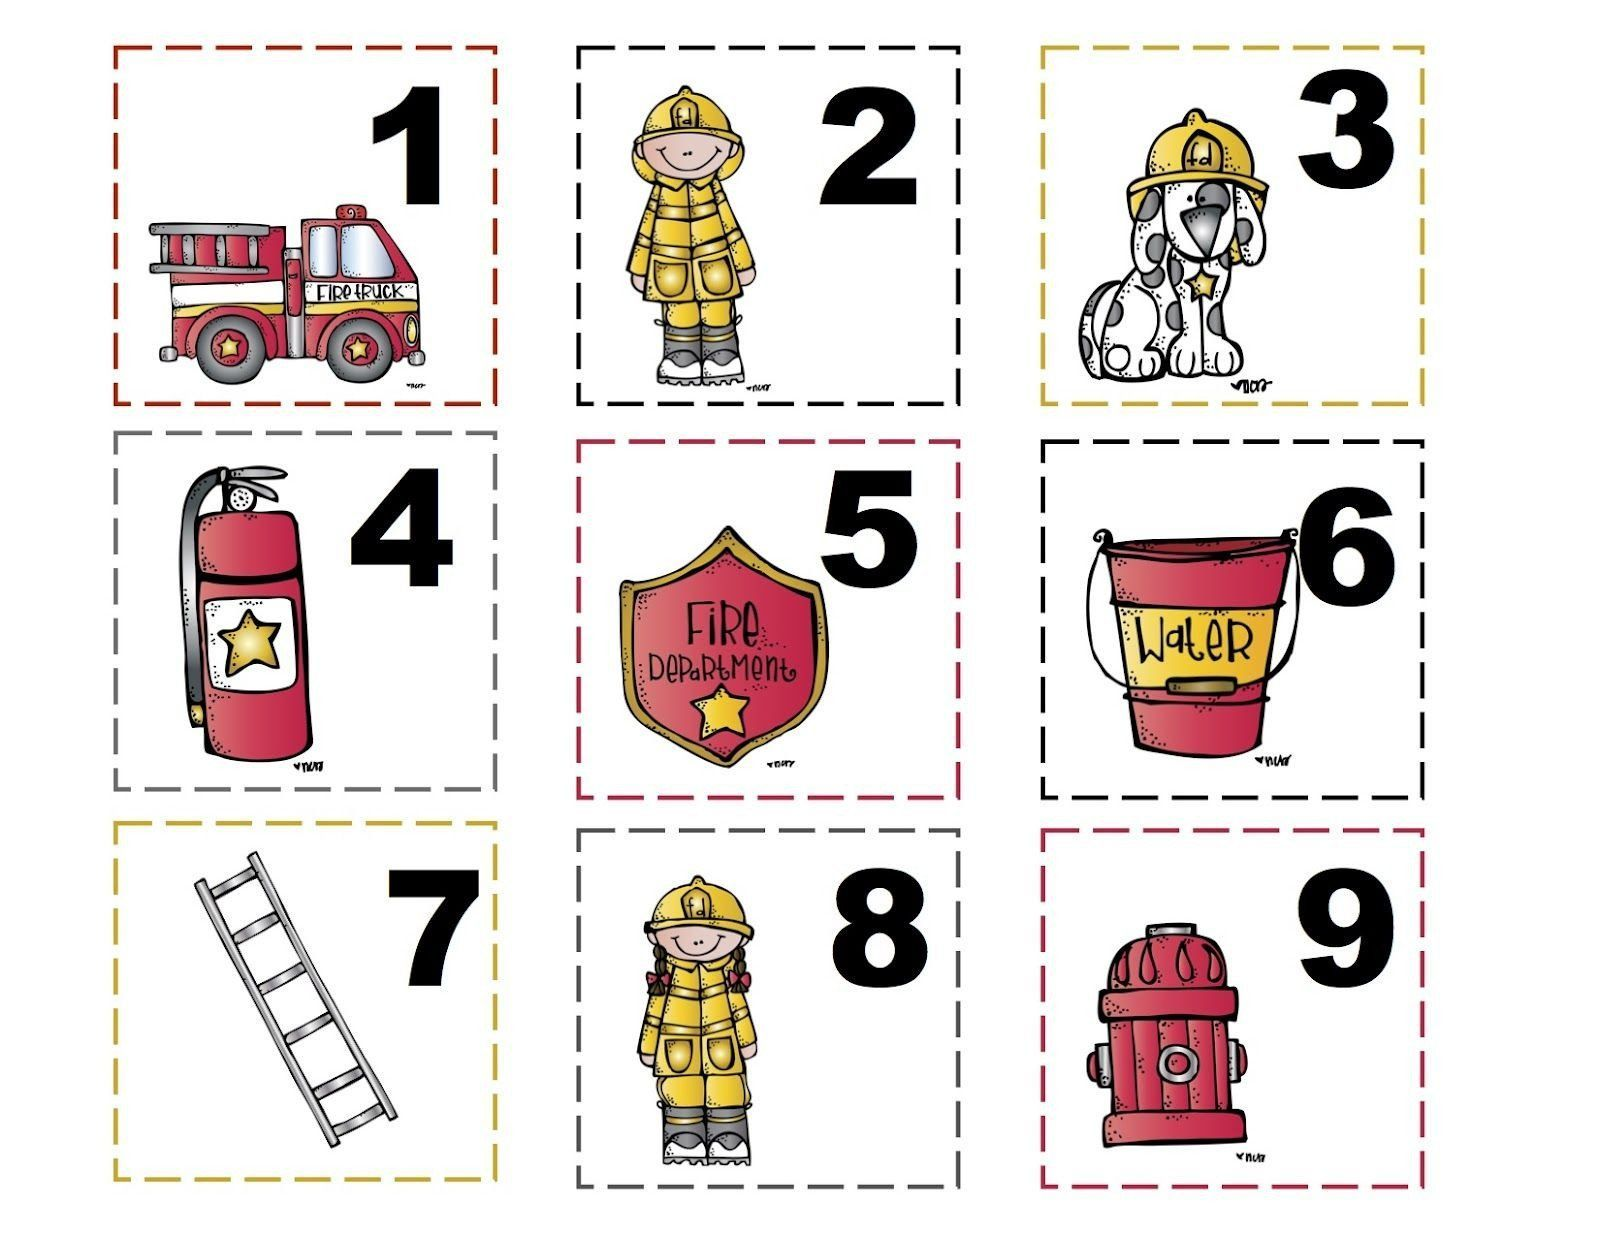 Free Printable Fire Safety Worksheets Free Preschool Printables Fire Safety Theme In 2021 Fire S In 2021 Fire Safety Preschool Crafts Fire Safety Preschool Fire Safety [ 1236 x 1600 Pixel ]